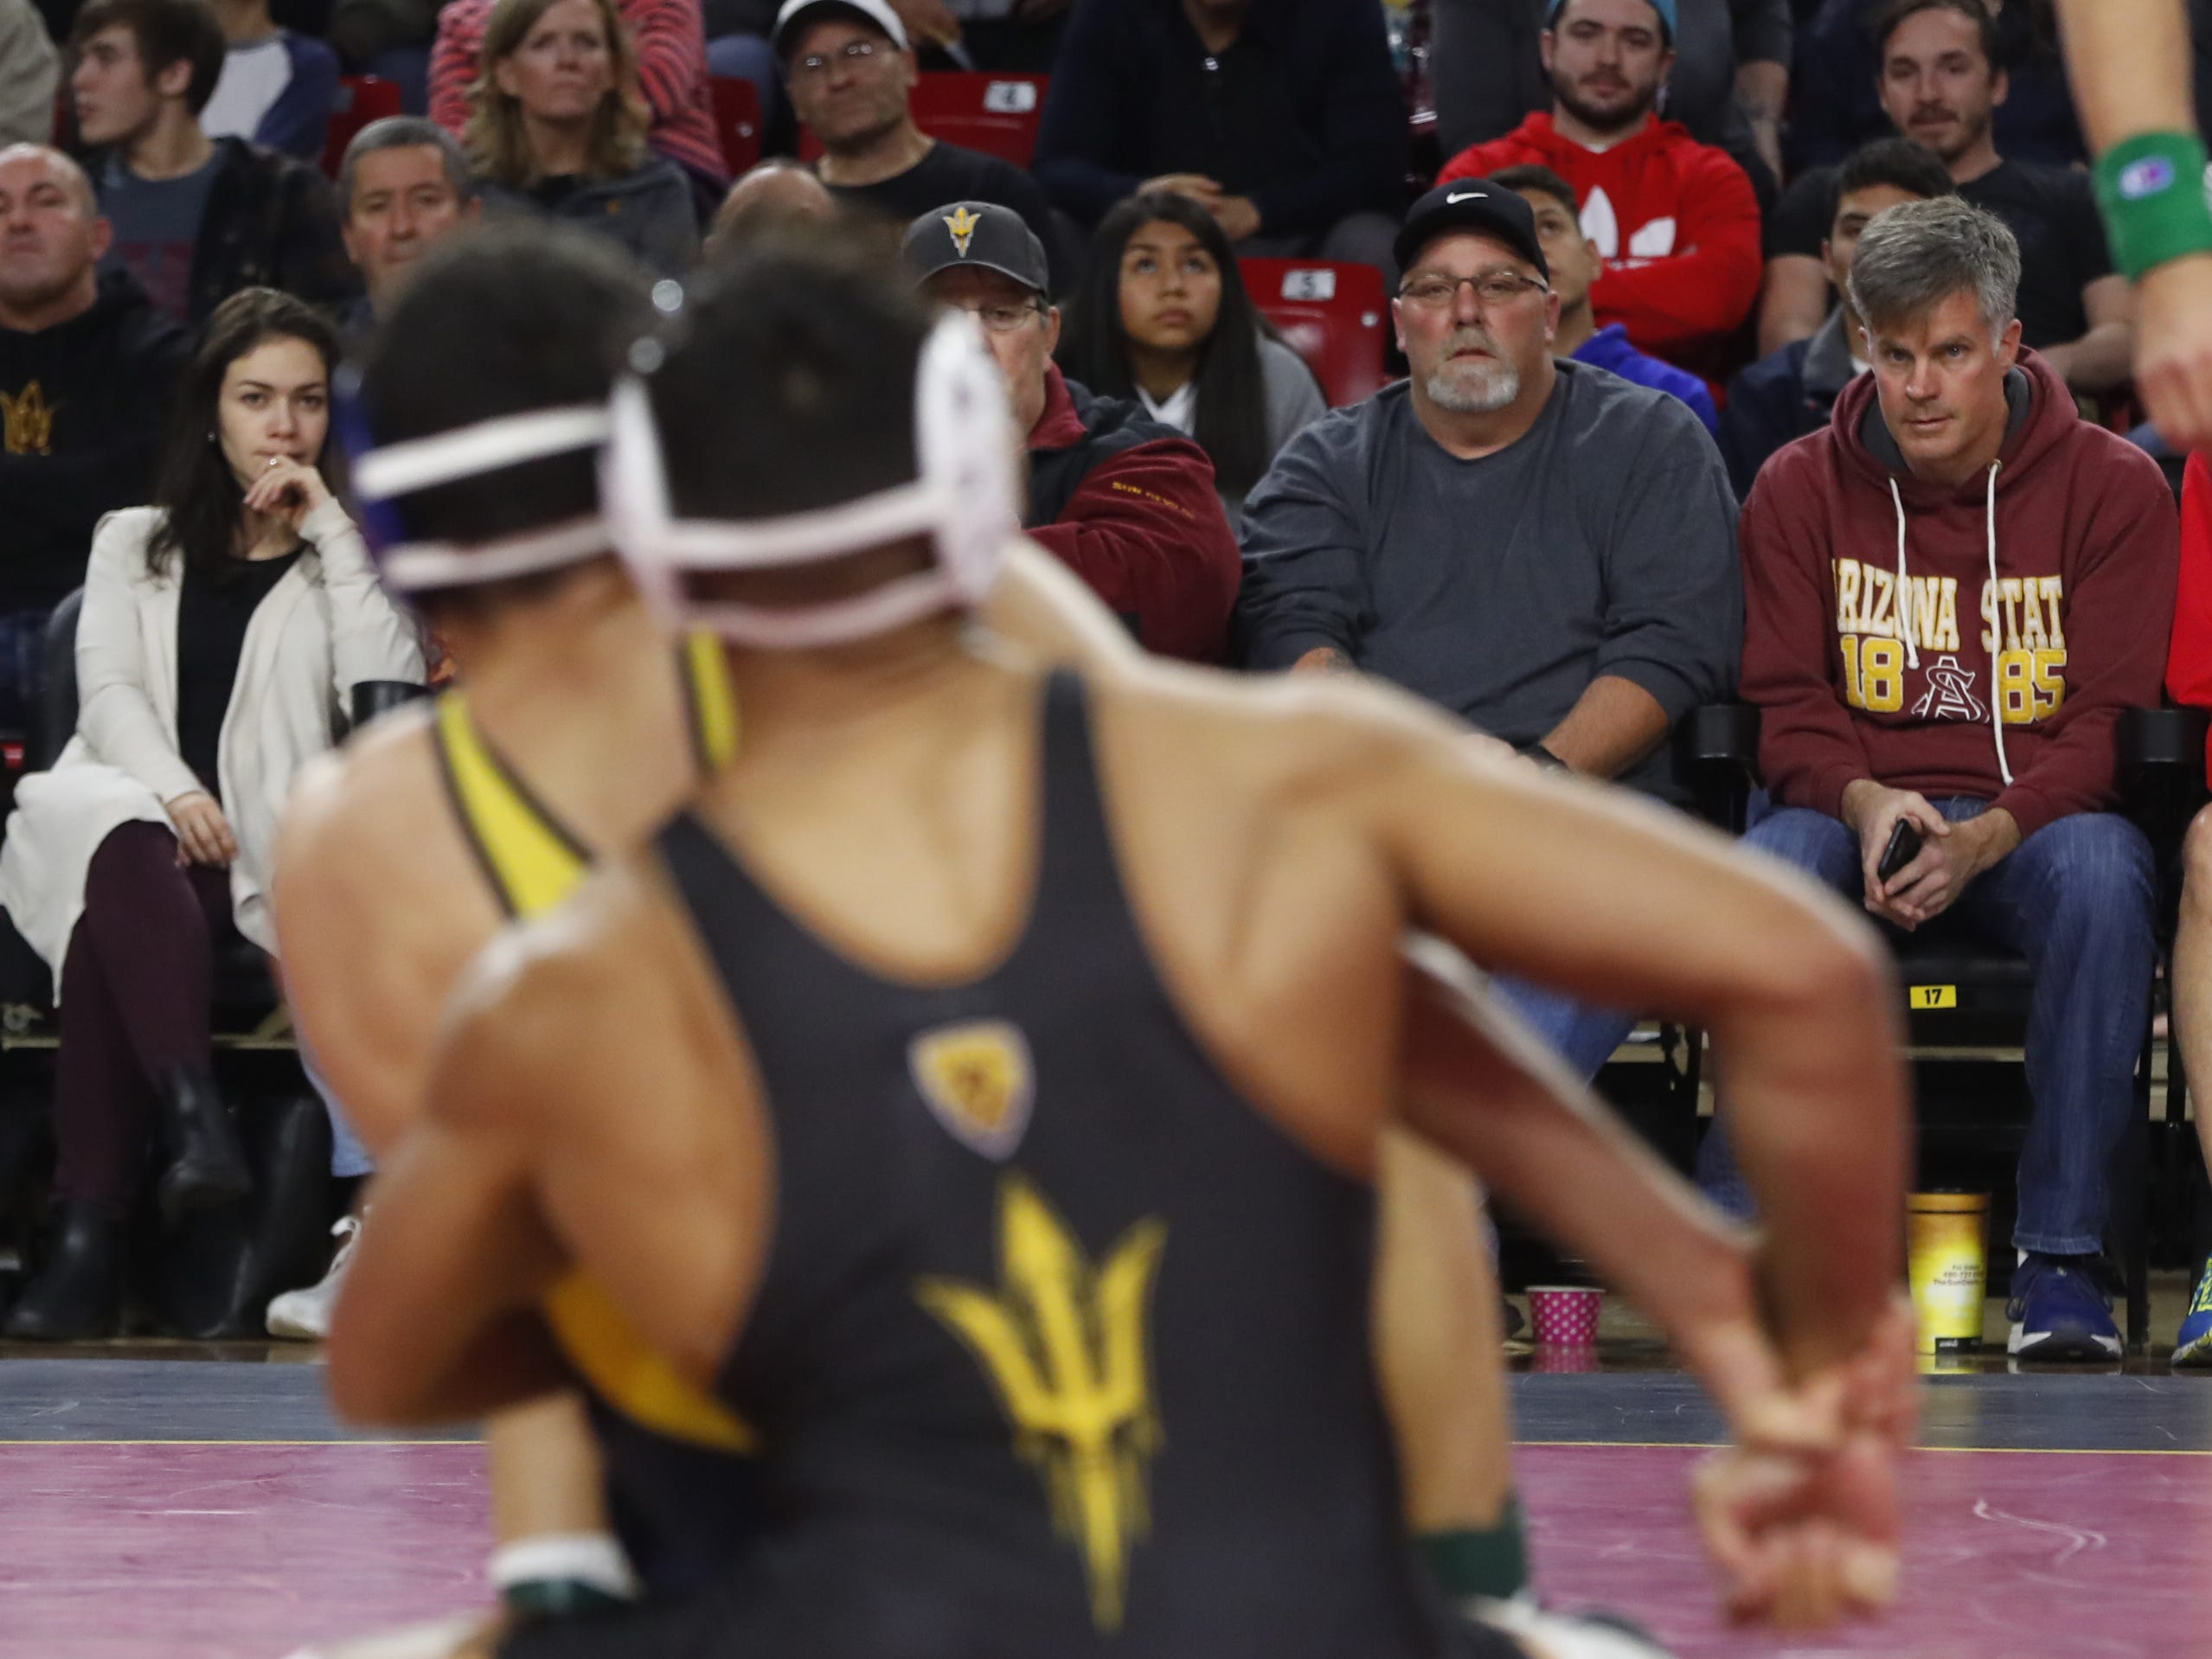 ASU's Zahid Valencia (in black) wrestles Michigan's Myles Amine (in blue and yellow) during a 174 lbs match at Wells Fargo Arena in Tempe, Ariz. on January 5, 2019.